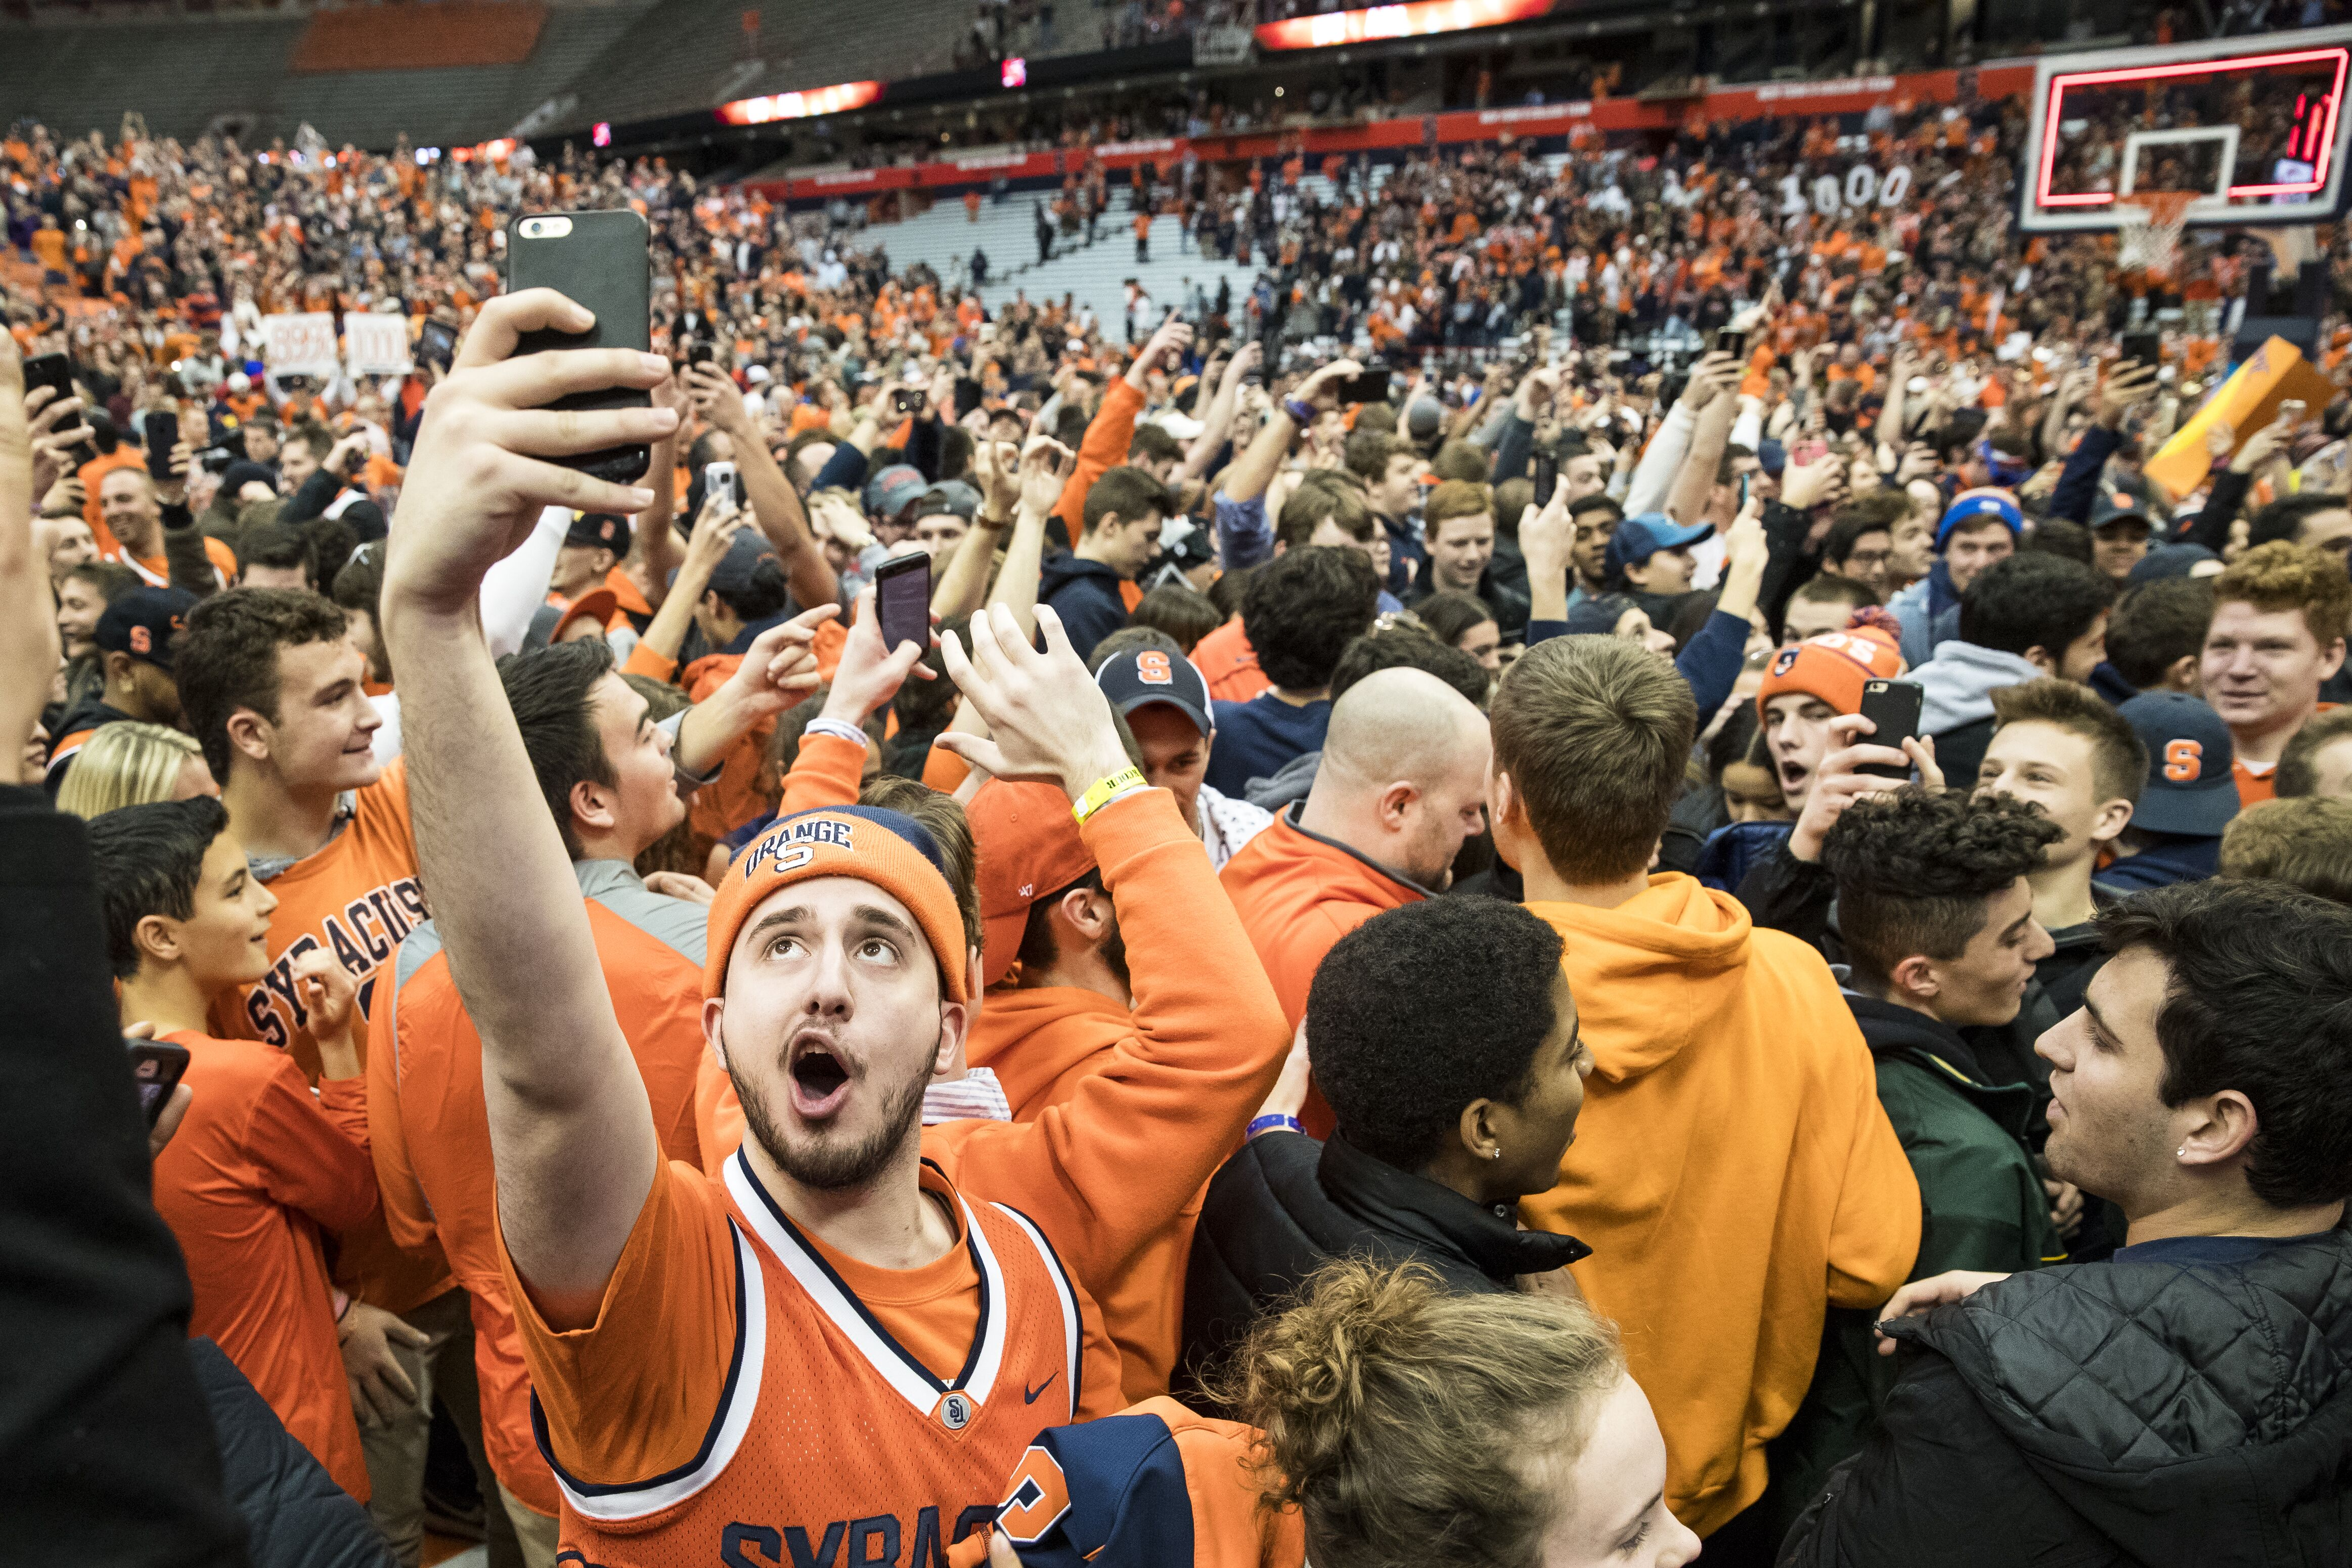 Syracuse Basketball Recruiting Juicy News On Nate Roberts And Others